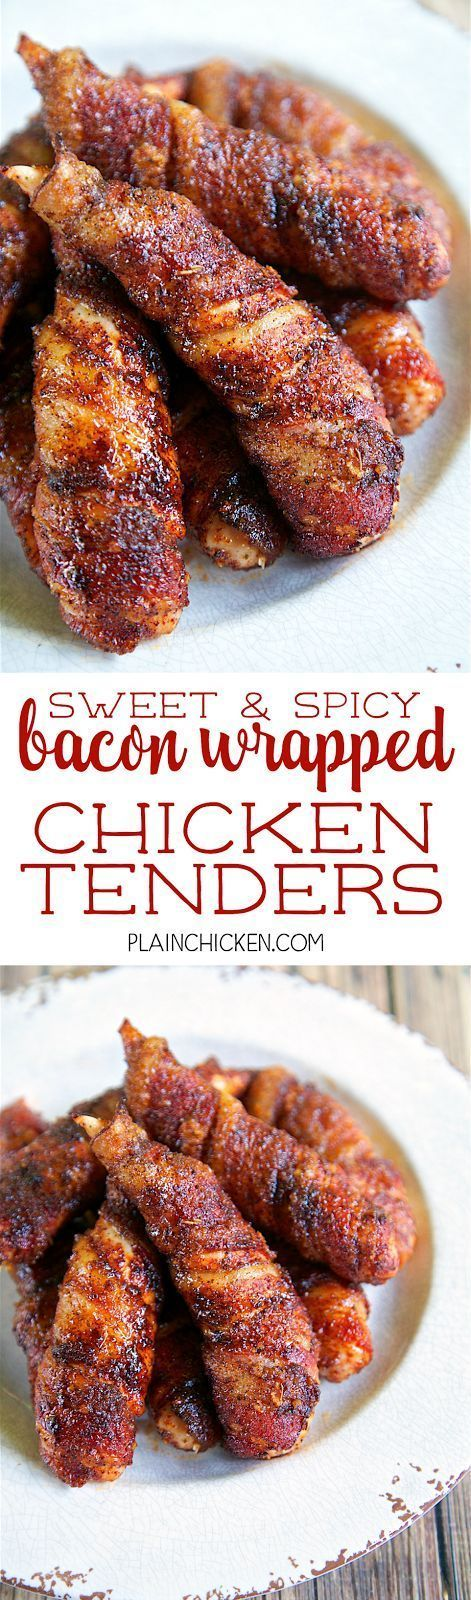 Sweet & Spicy Bacon Wrapped Chicken Tenders. Only 4 simple ingredients - chicken, bacon, brown sugar and chili powder. They only take about 5 minutes to make and are ready to eat in under 30 minutes. Sweet and sal